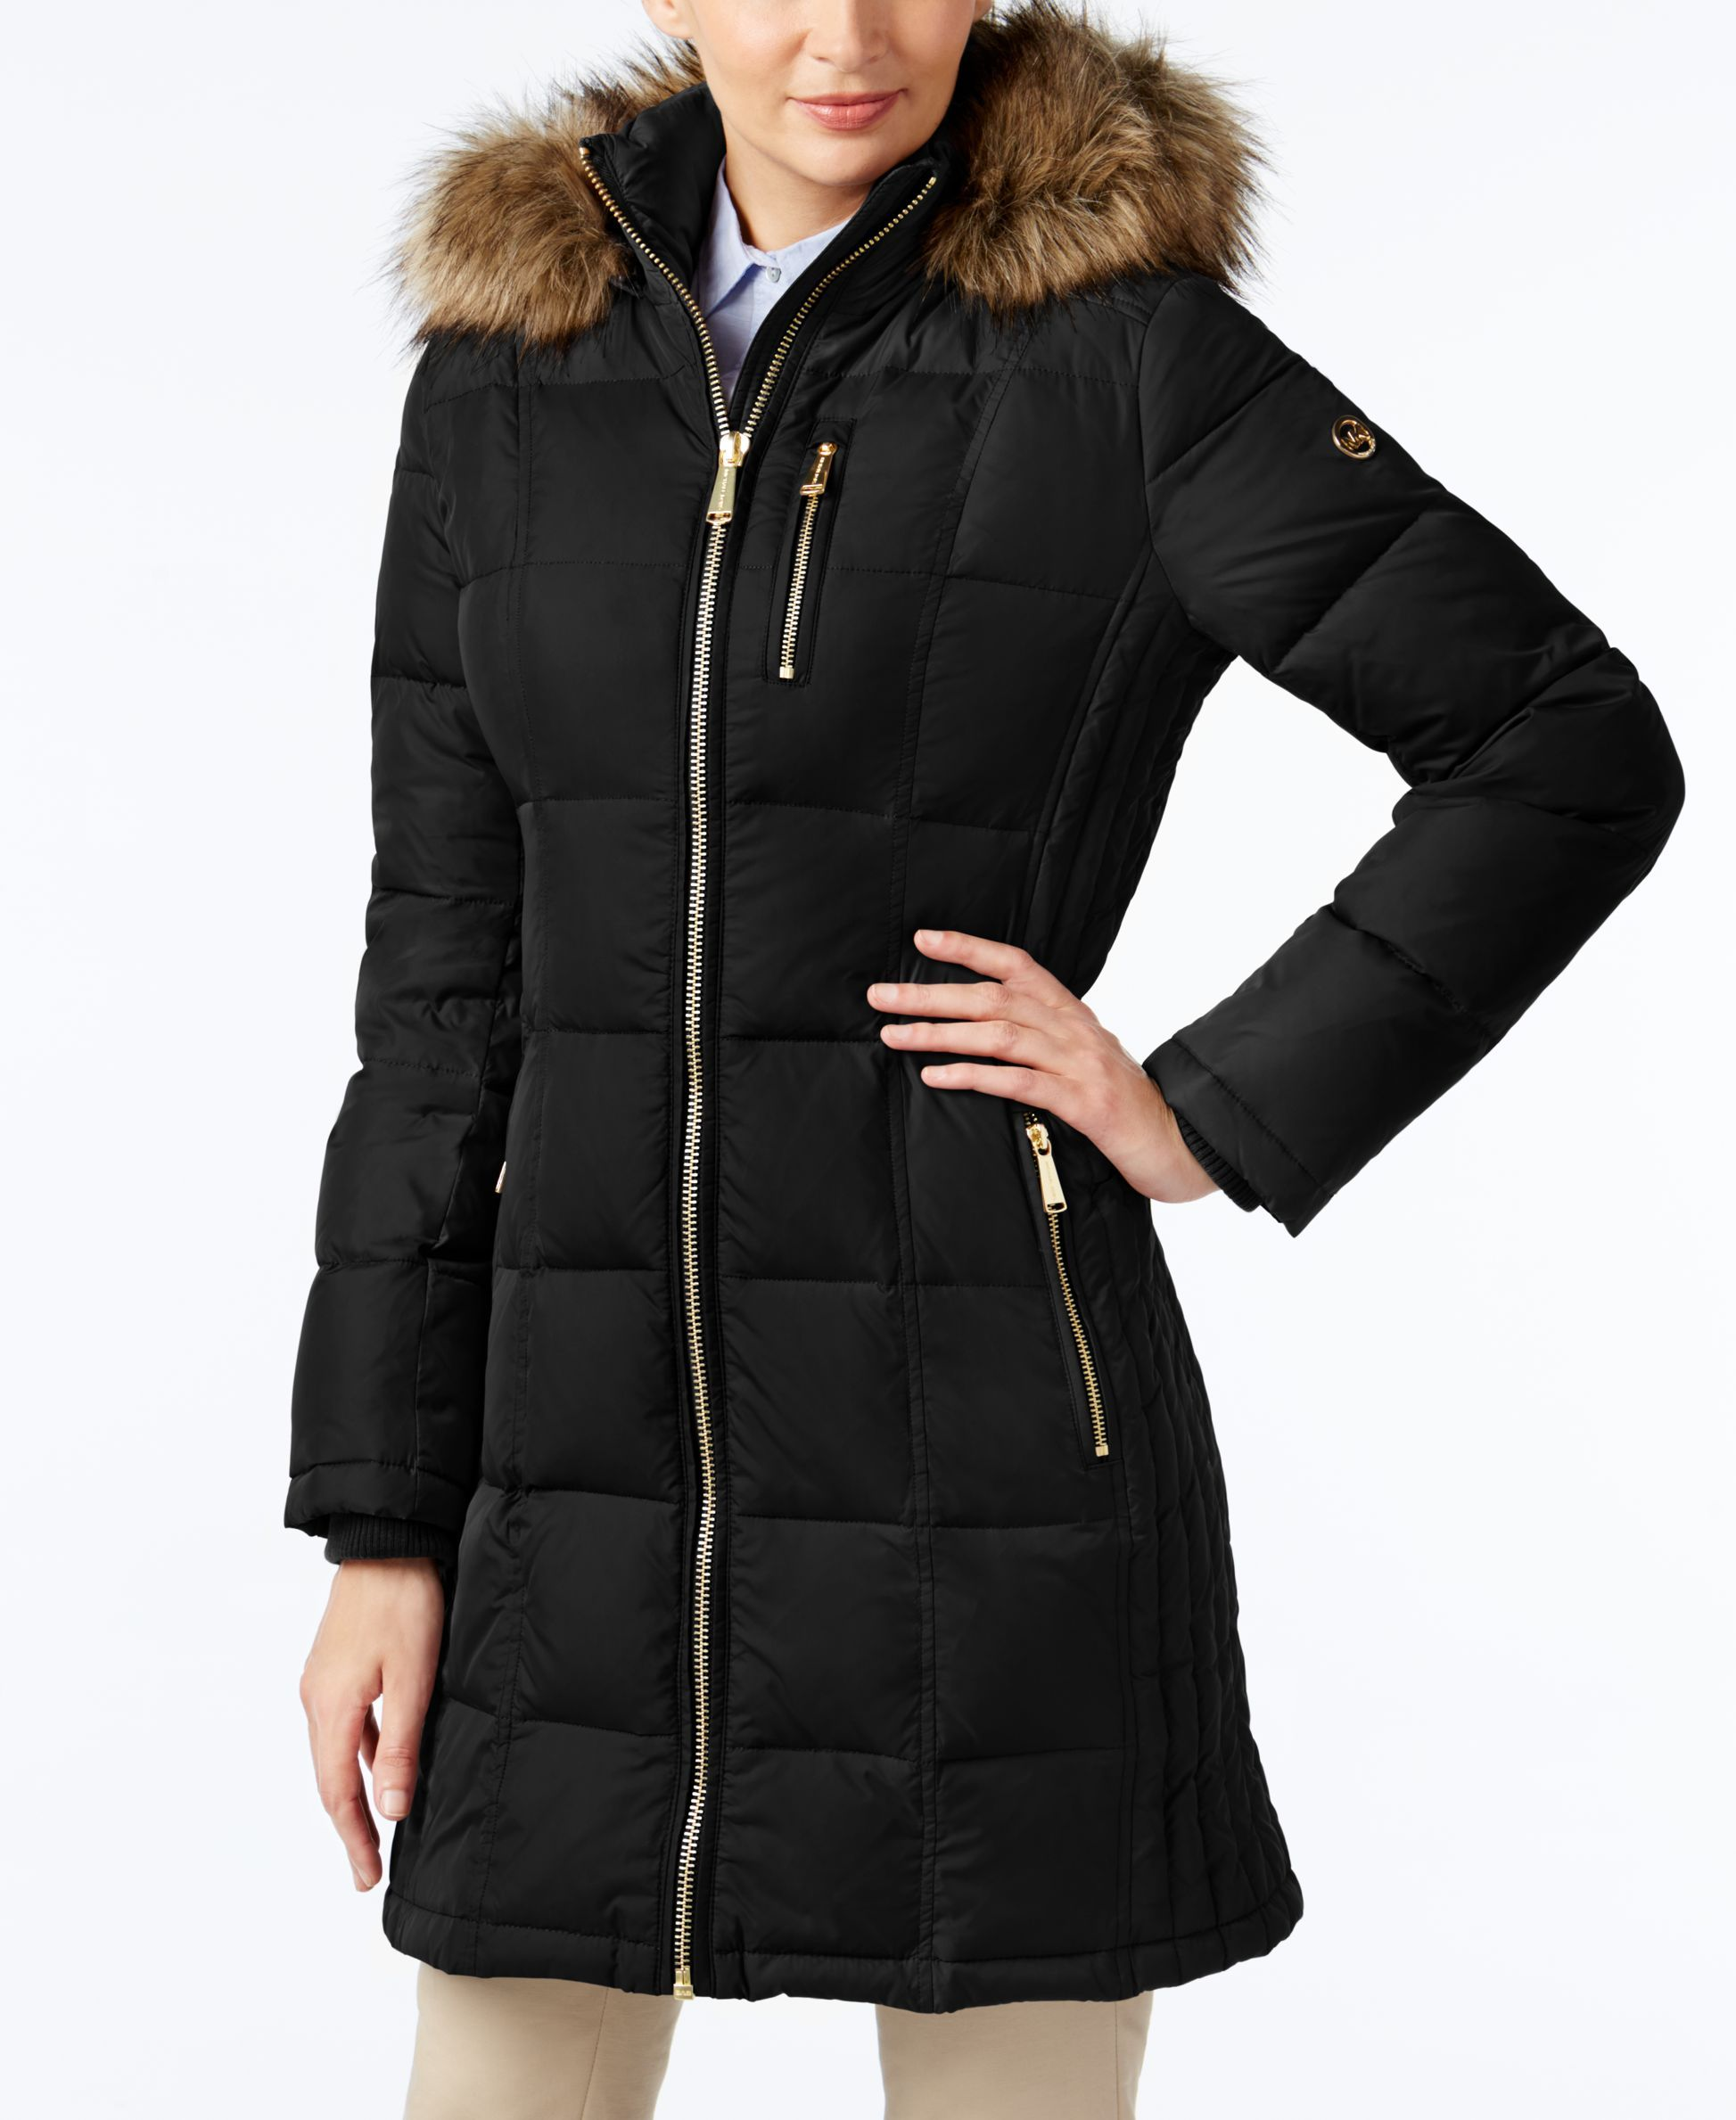 0fe348fd9f29 Warmth and comfort come together in this puffer coat from Michael Michael  Kors